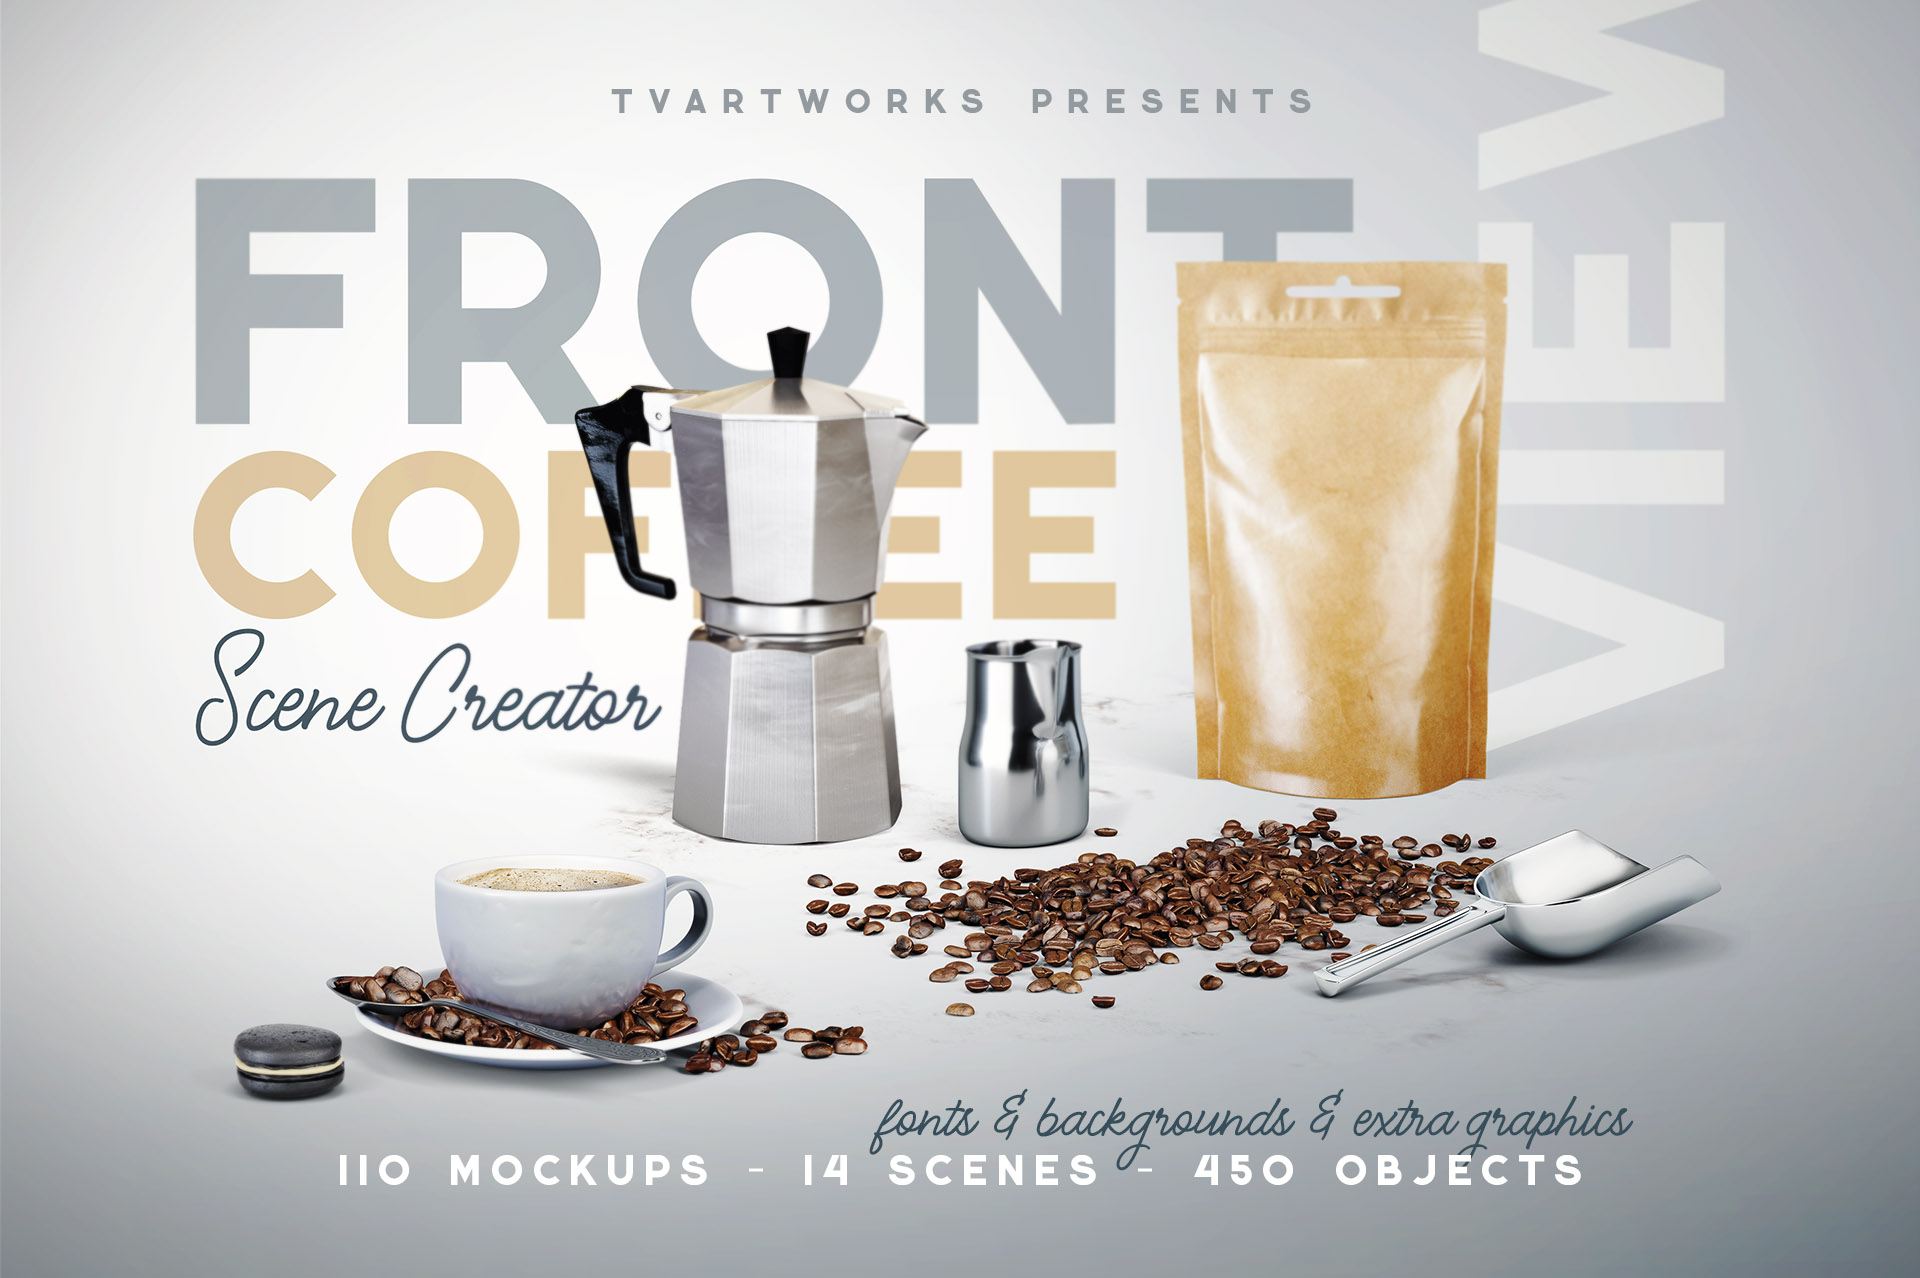 Coffee Scene Creator - Front View